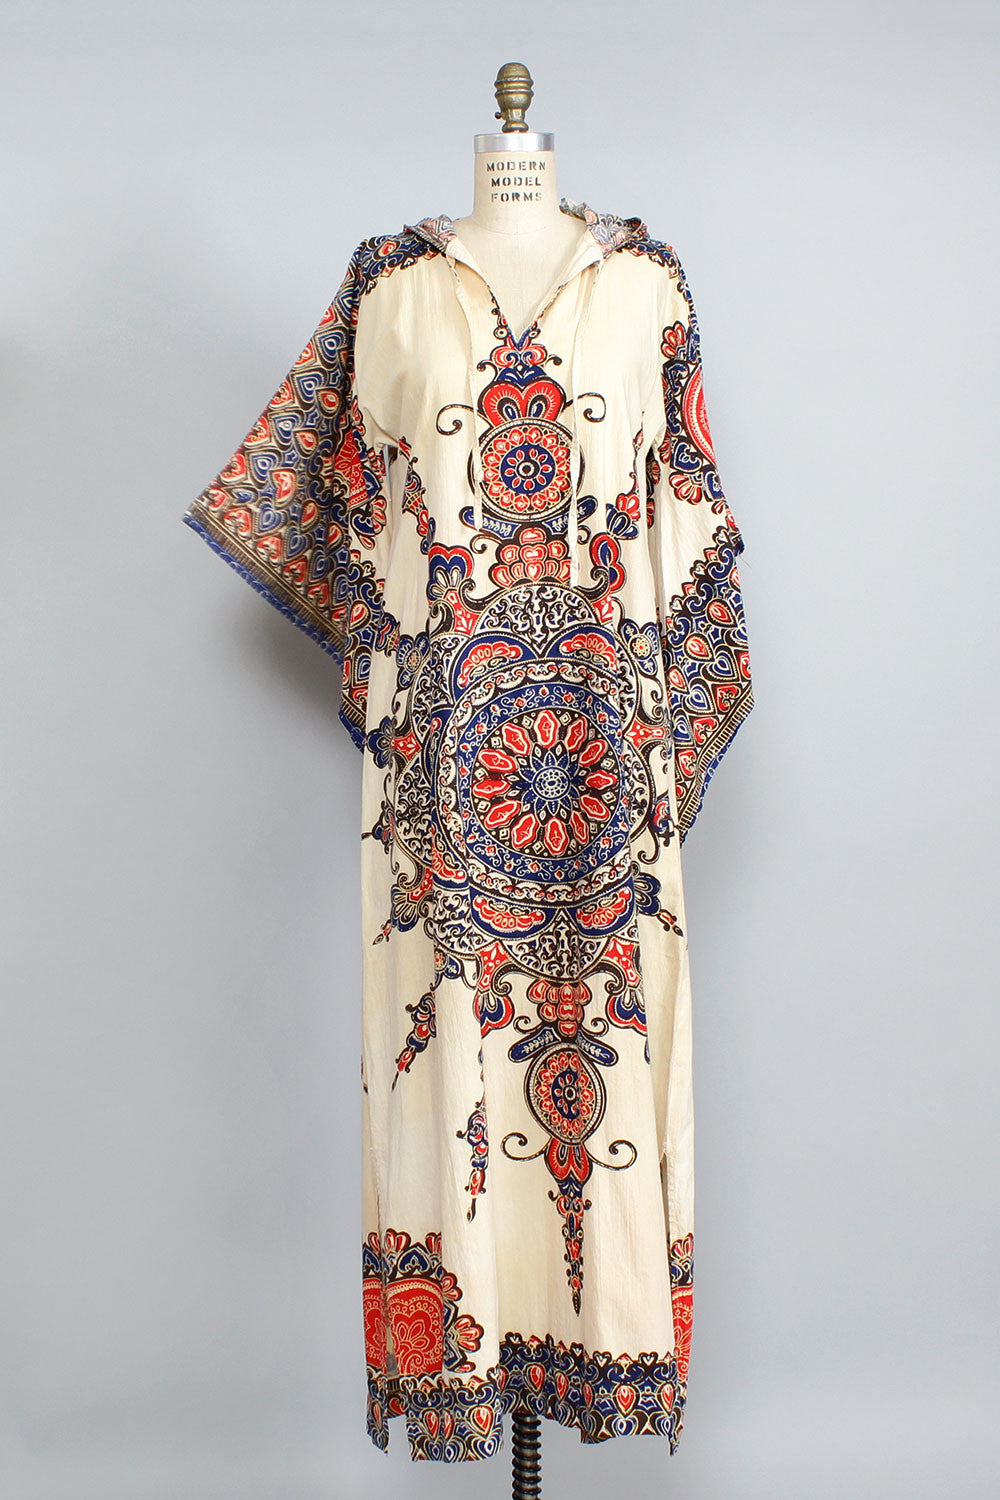 Boho Beach Bonfire Dress S/M